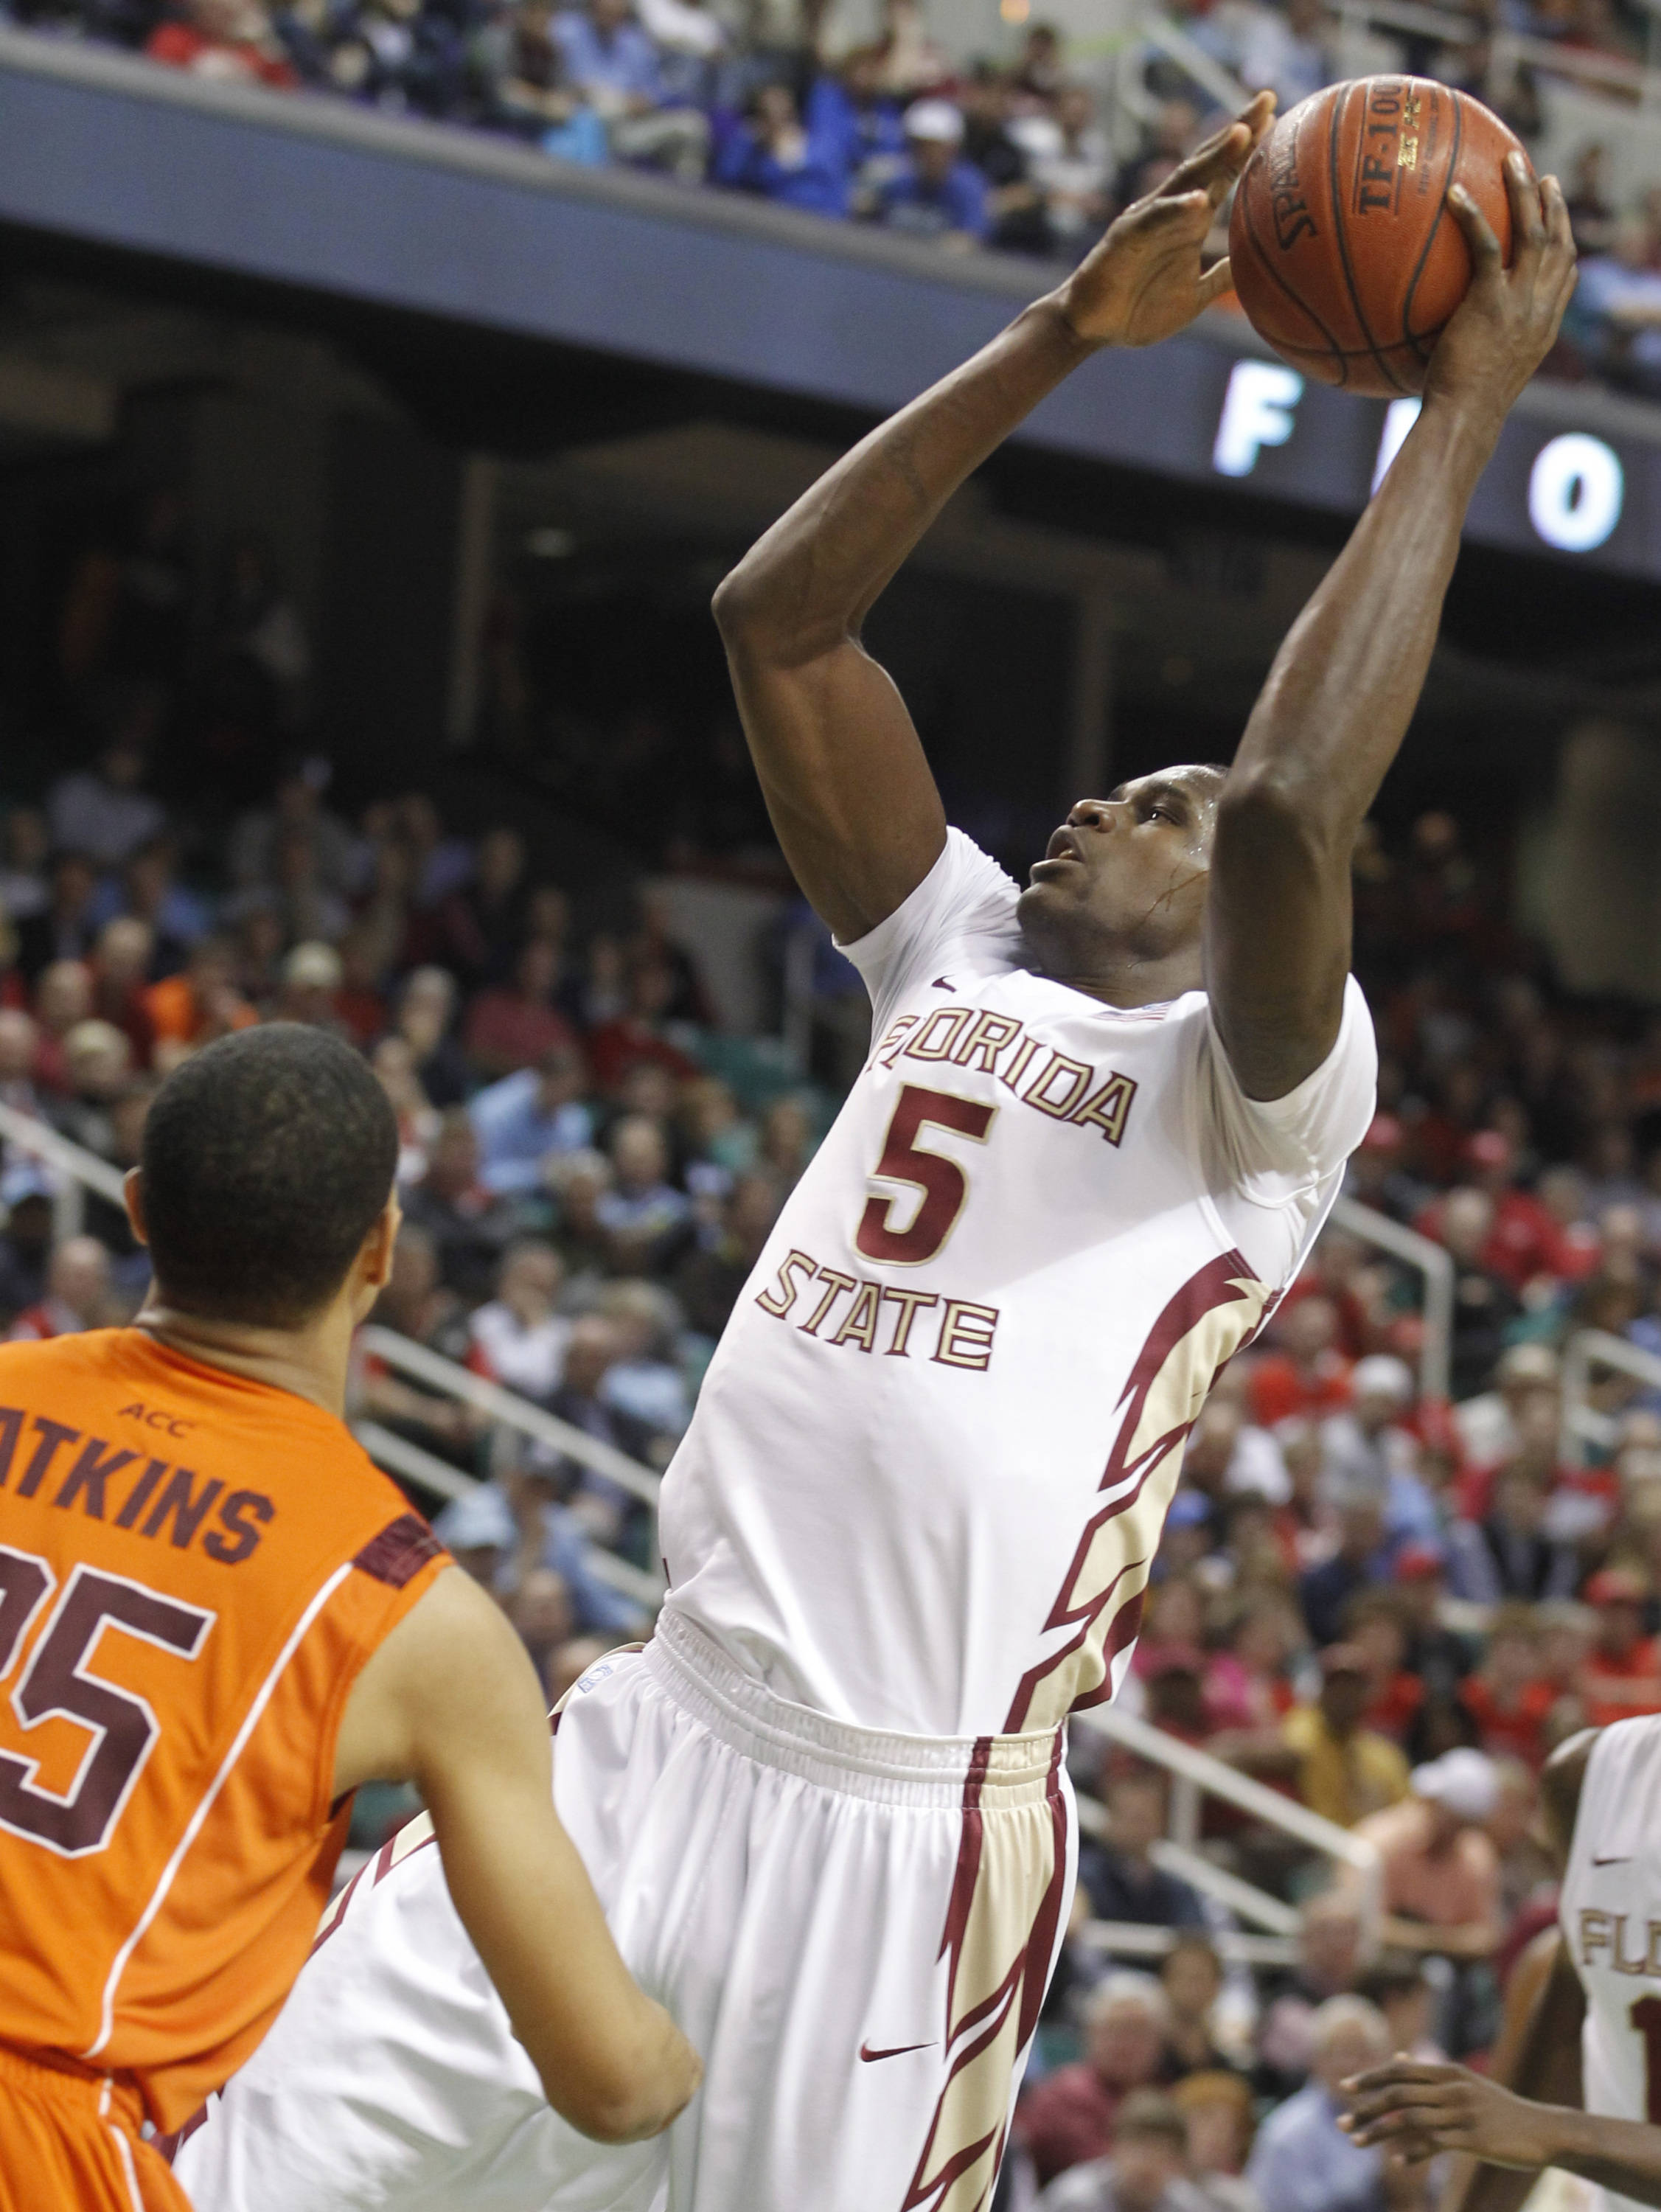 Florida State's Bernard James shoots over Virginia Tech's Manny Atkins in the first half. (AP Photo/Bob Leverone)